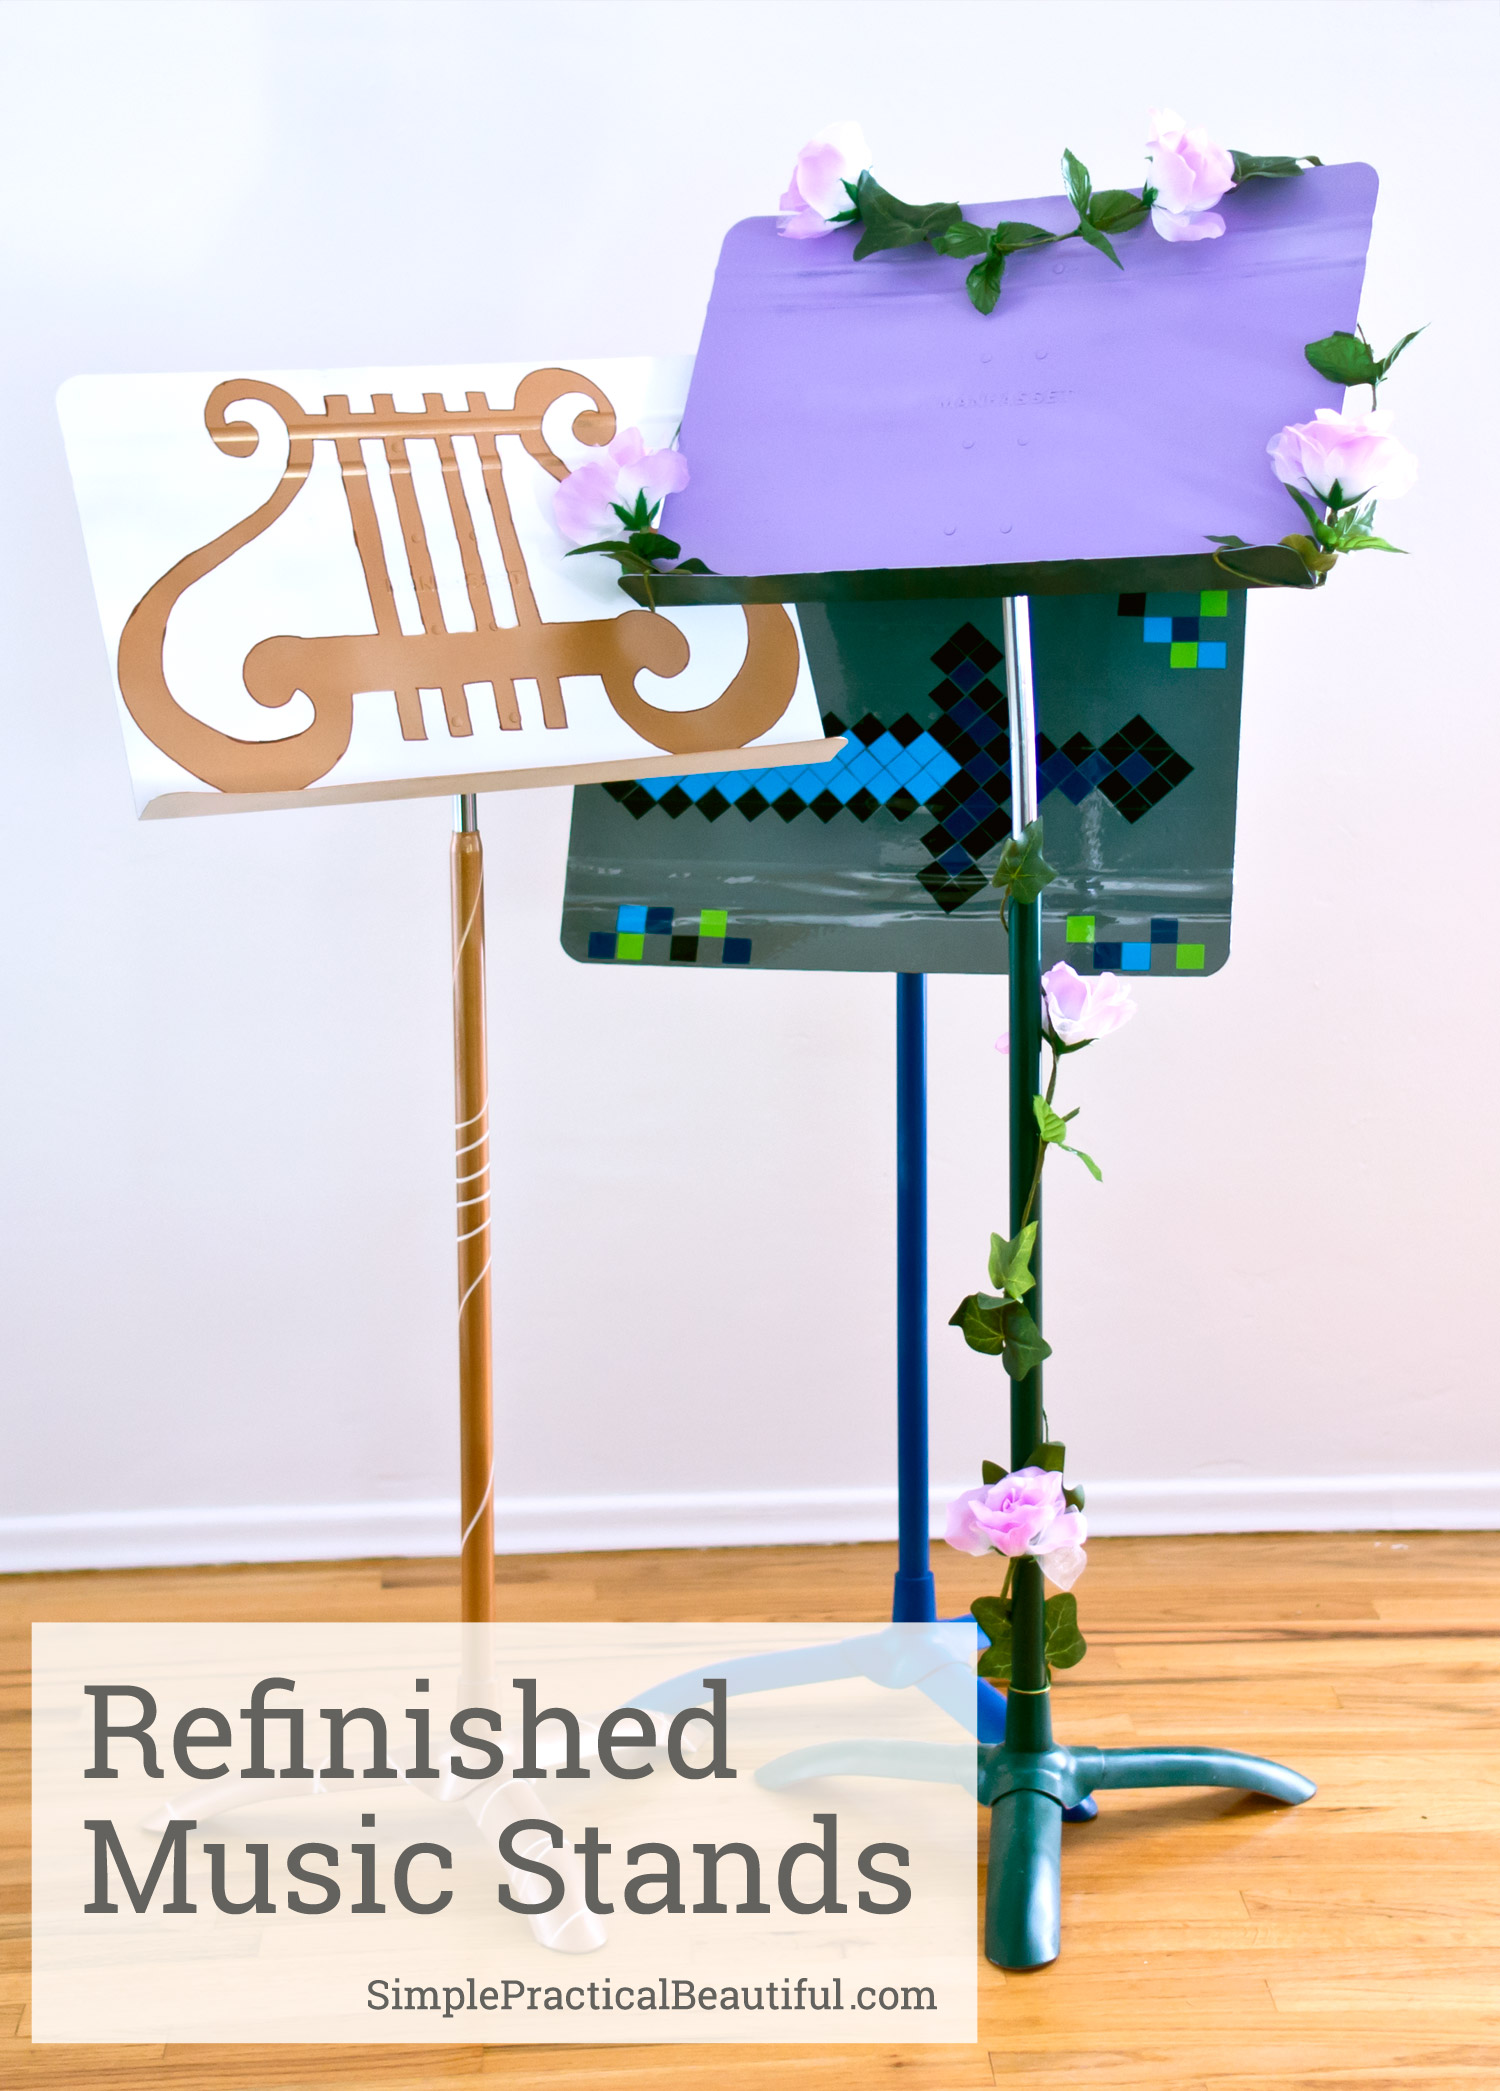 How to refinish a music stand. With some paint and a little creativity, any musician can do this DIY project.